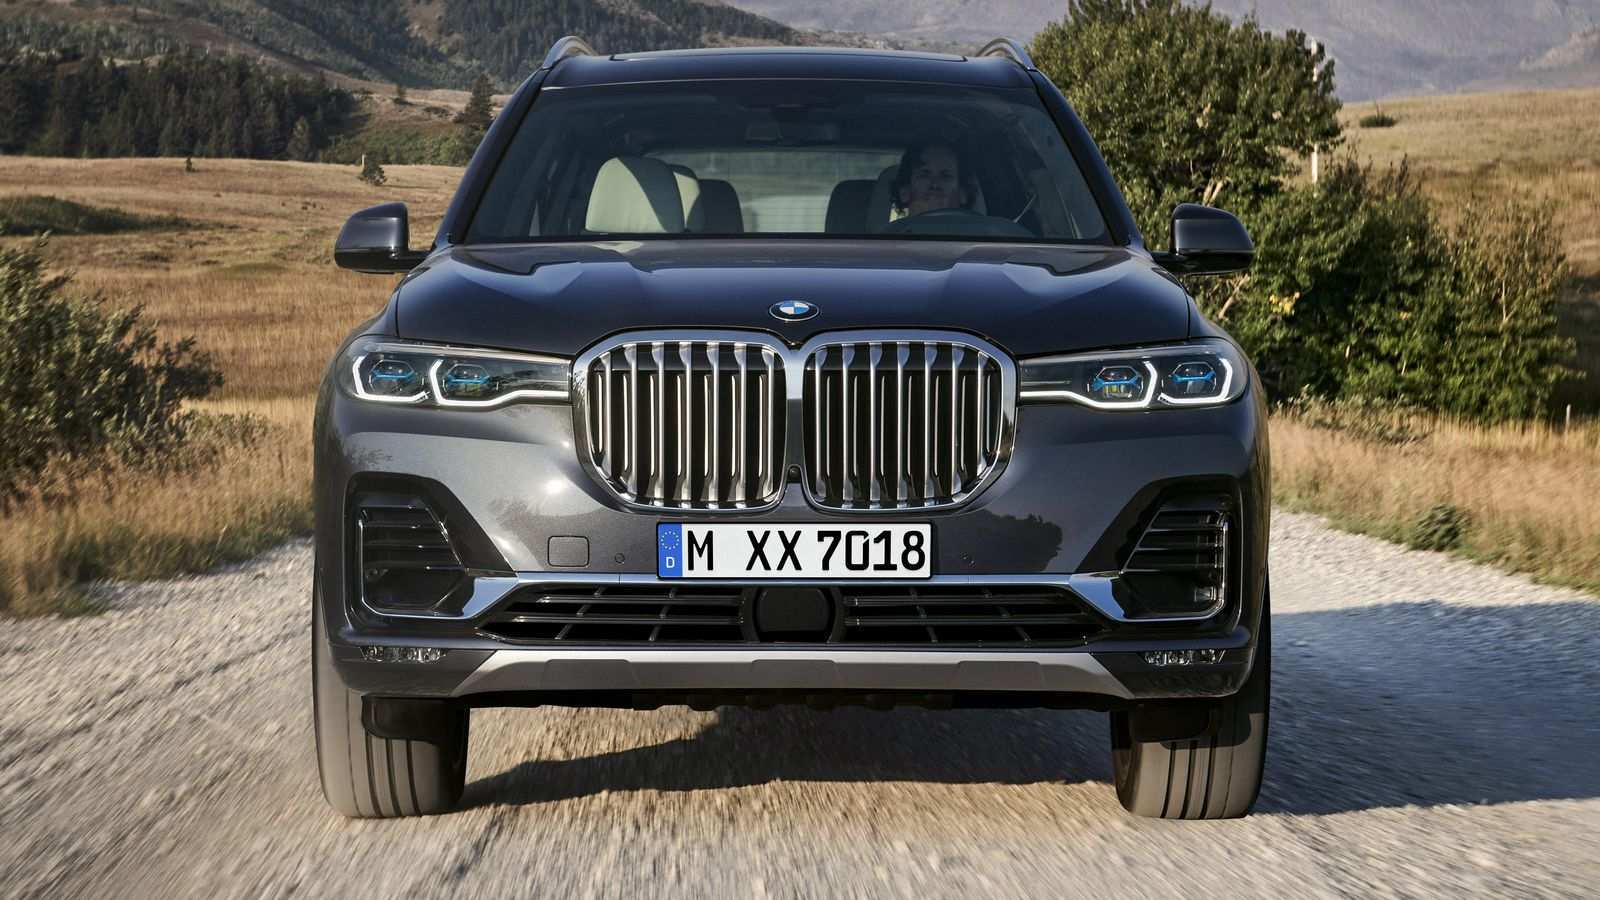 19 The 2020 BMW X7 Suv Series Exterior And Interior